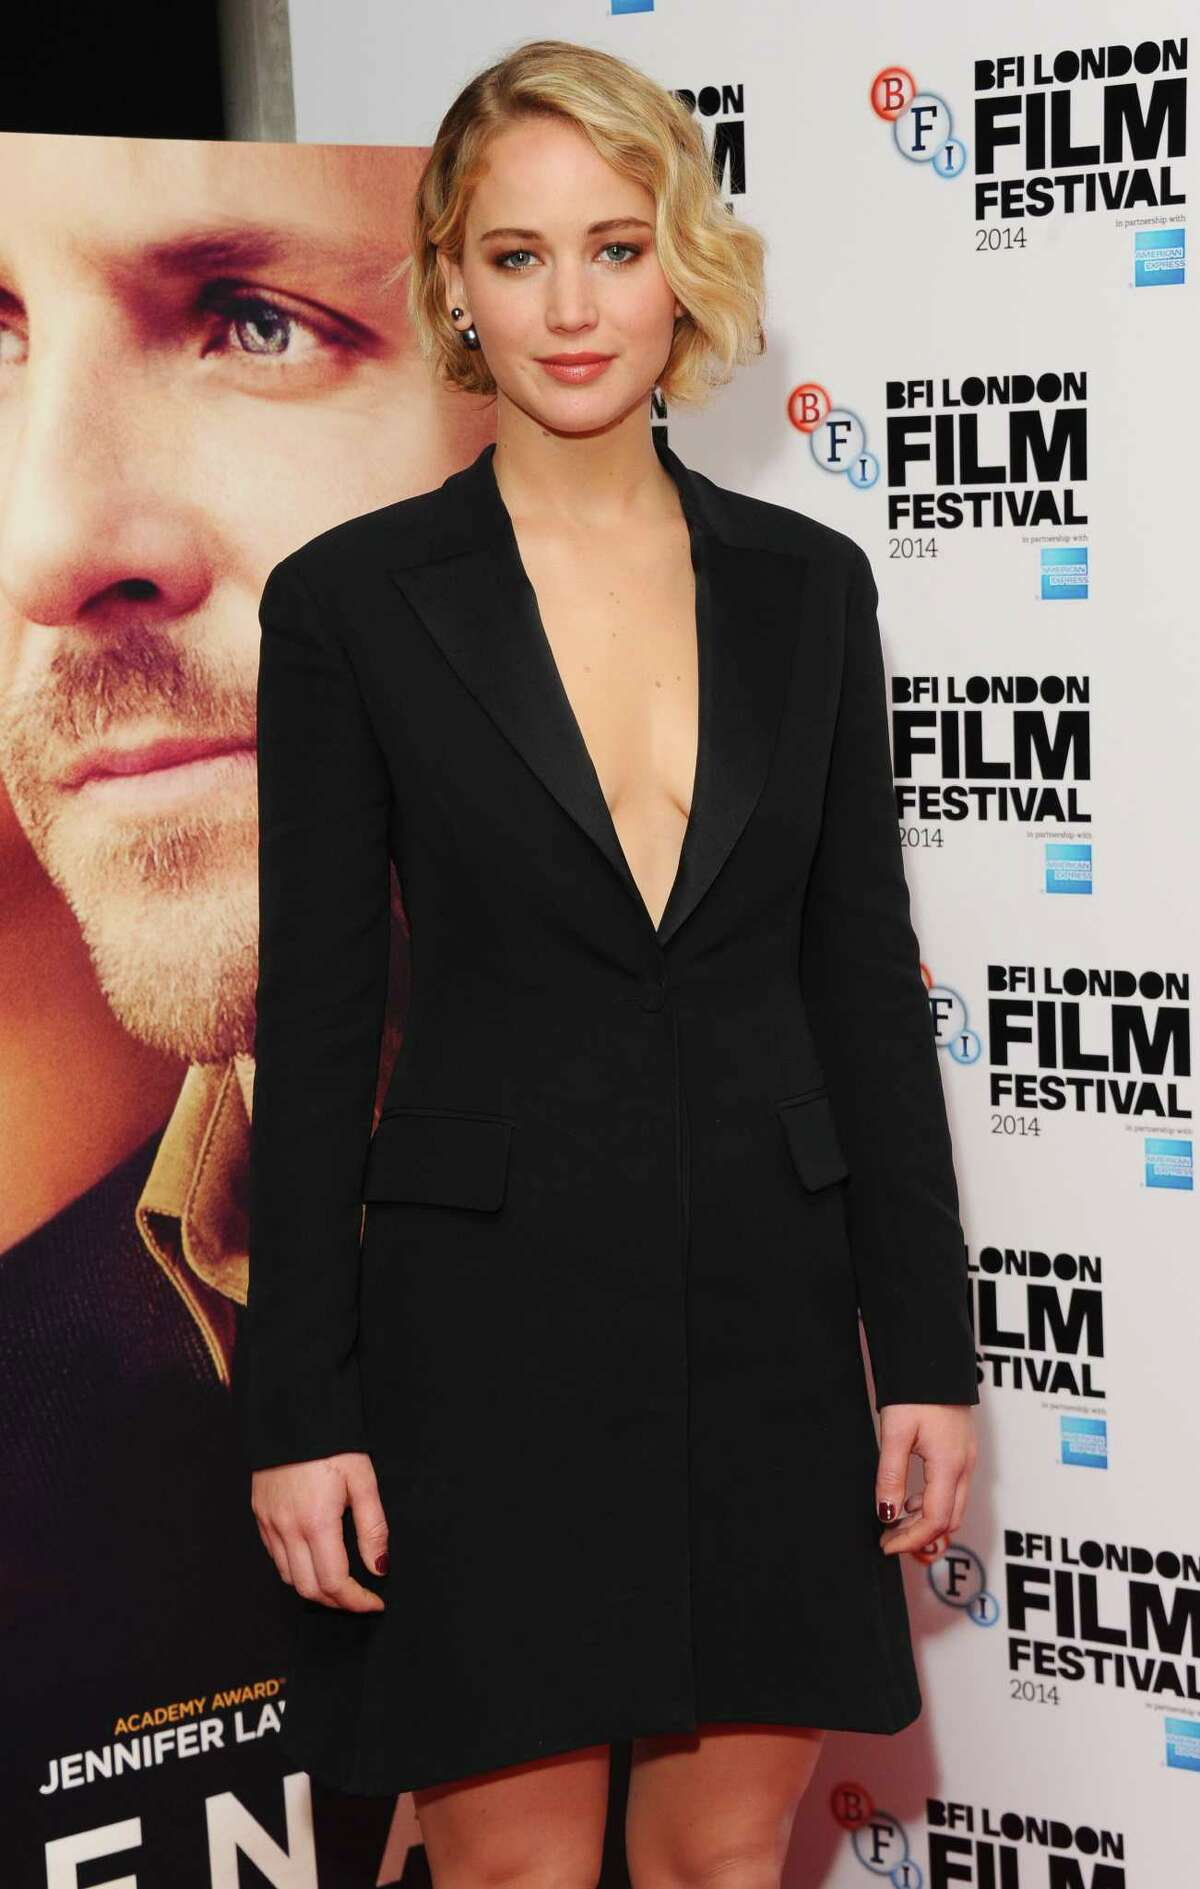 Jennifer Lawrence attends the premiere for